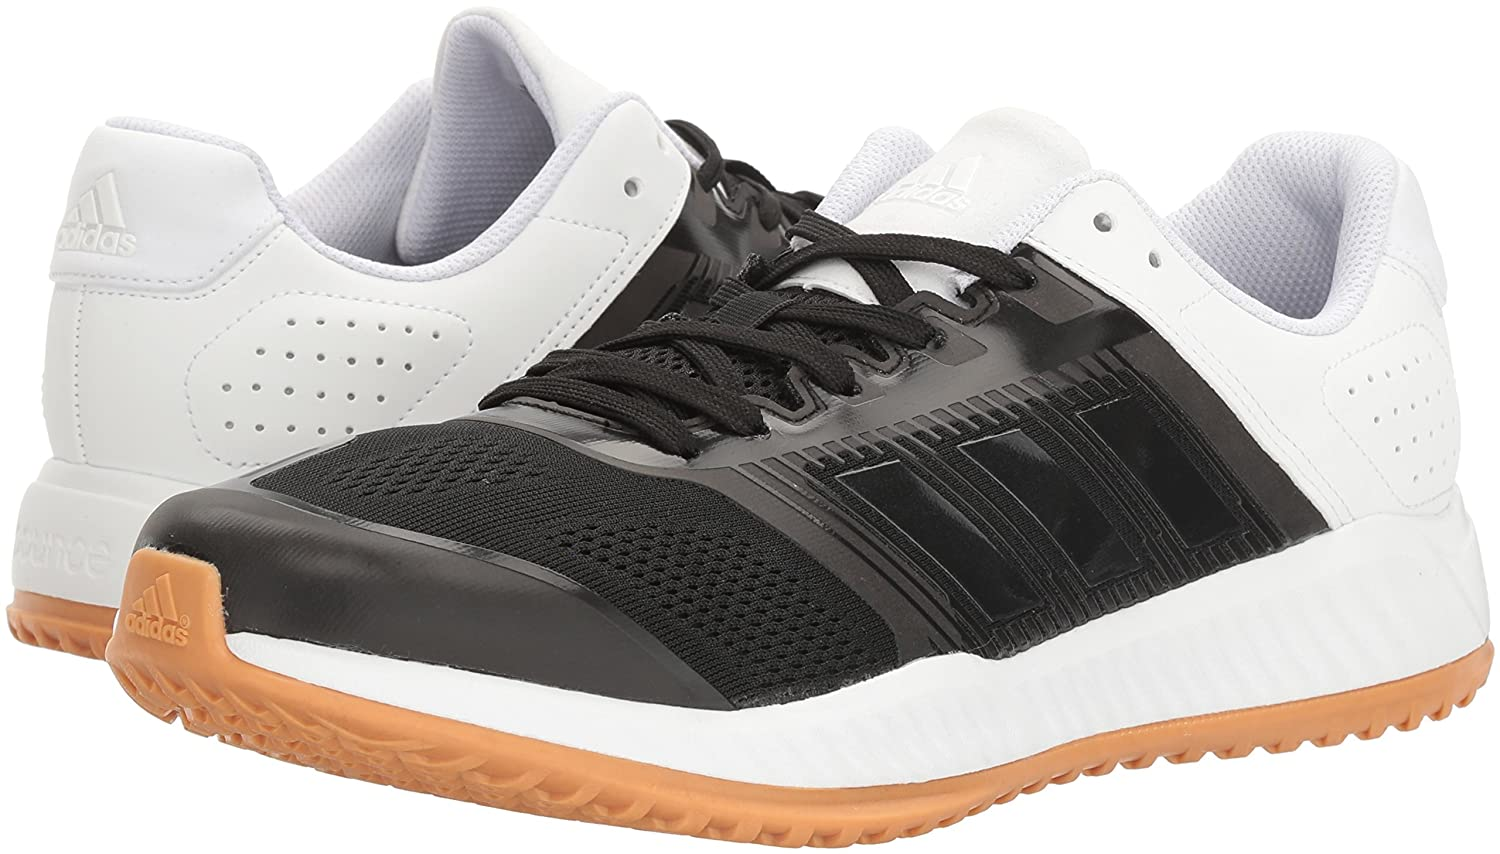 adidas Men's ZG Bounce Training Shoes: Amazon.ca: Shoes